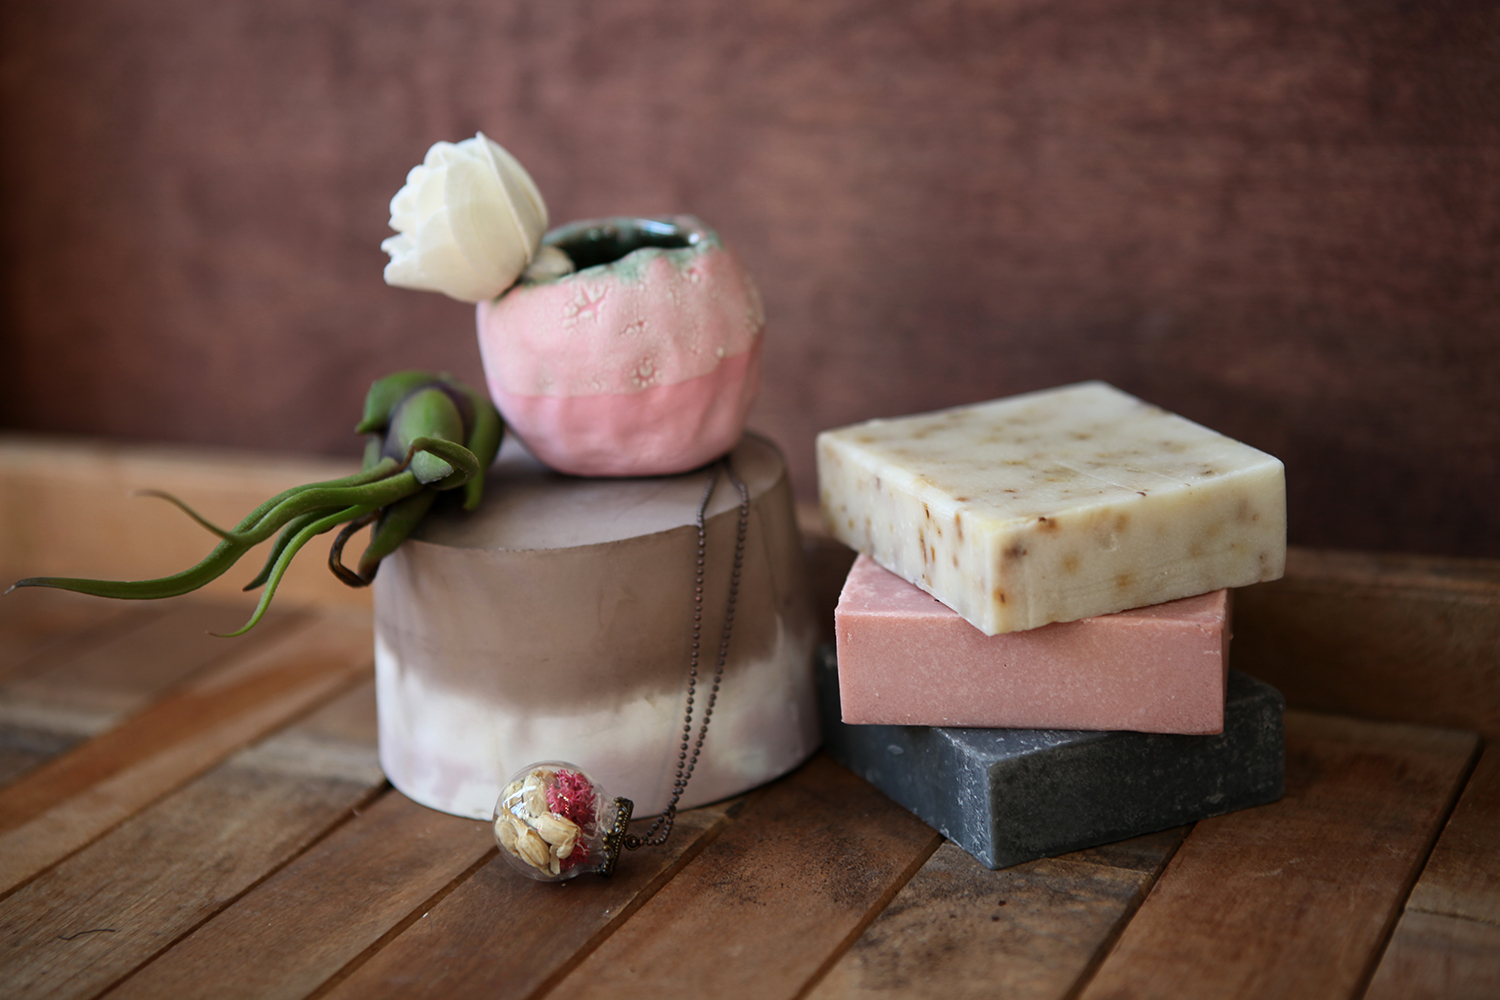 Welcome the freshness in the air with handmade soaps, essential oil diffusers, and flower globe pendants.